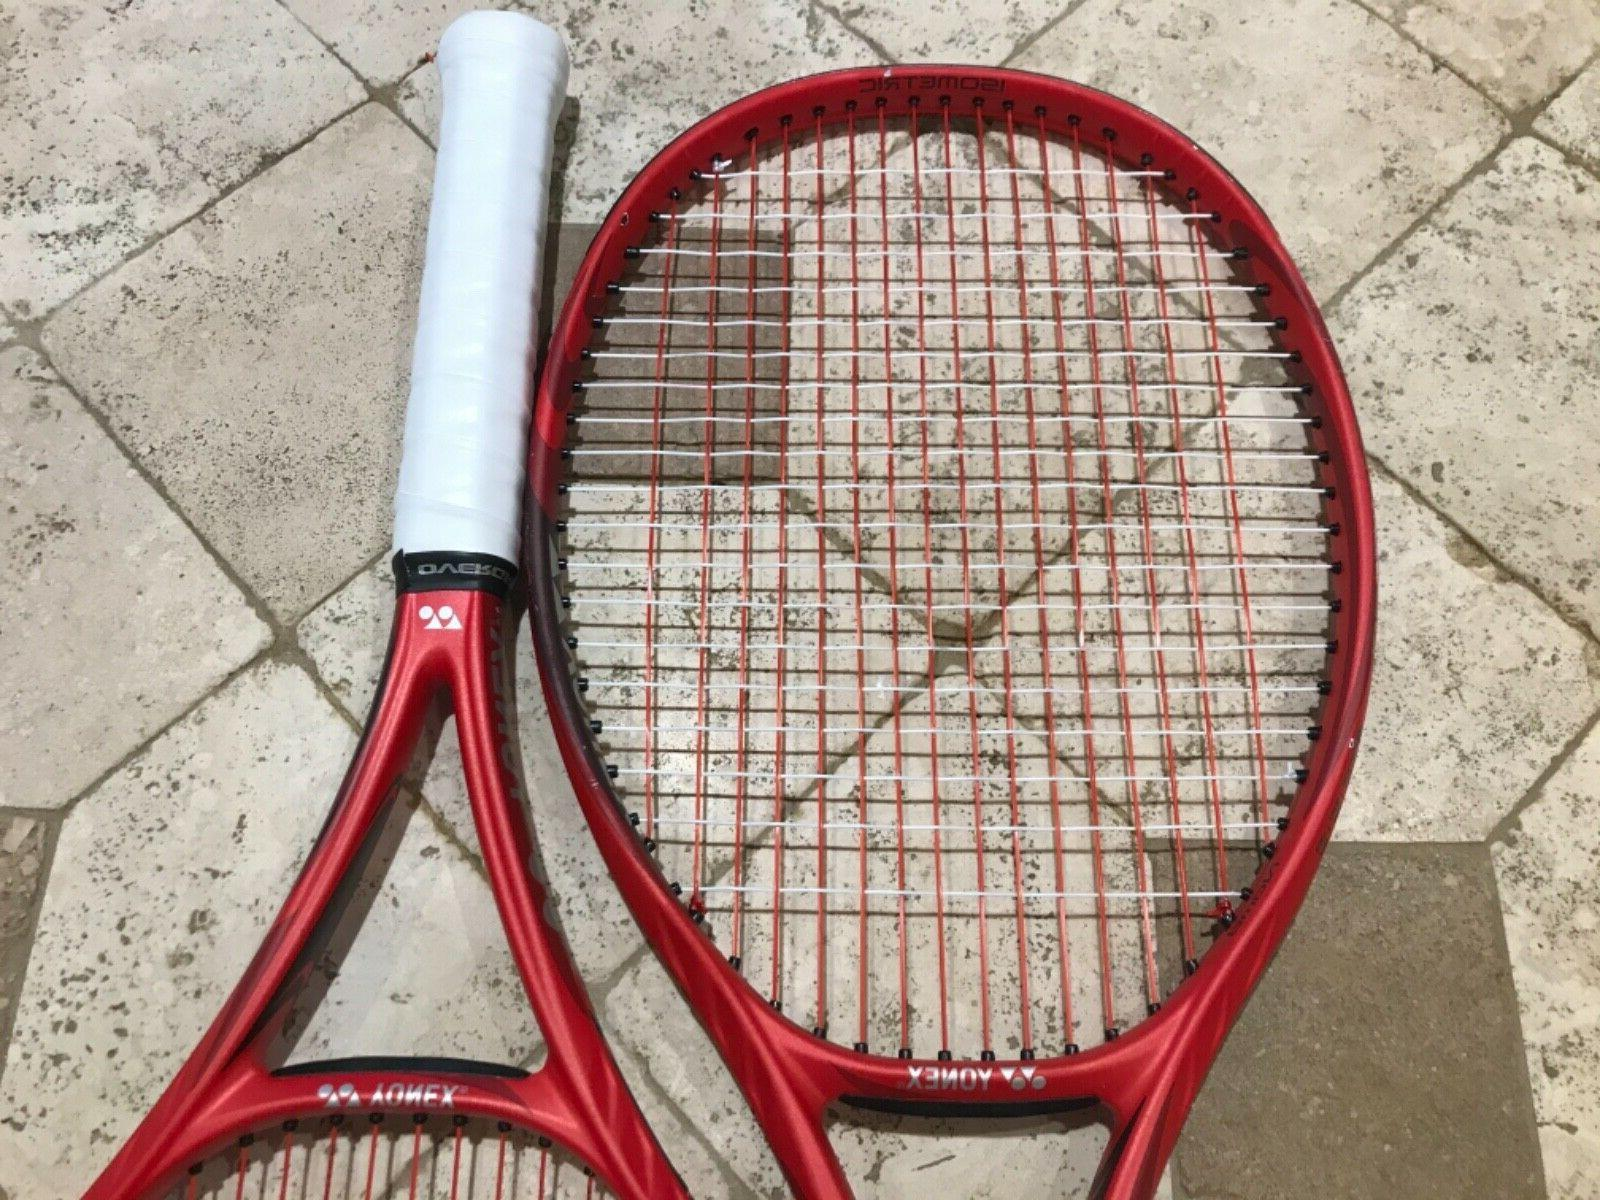 Up 2 VCORE 98 Tennis Racquets